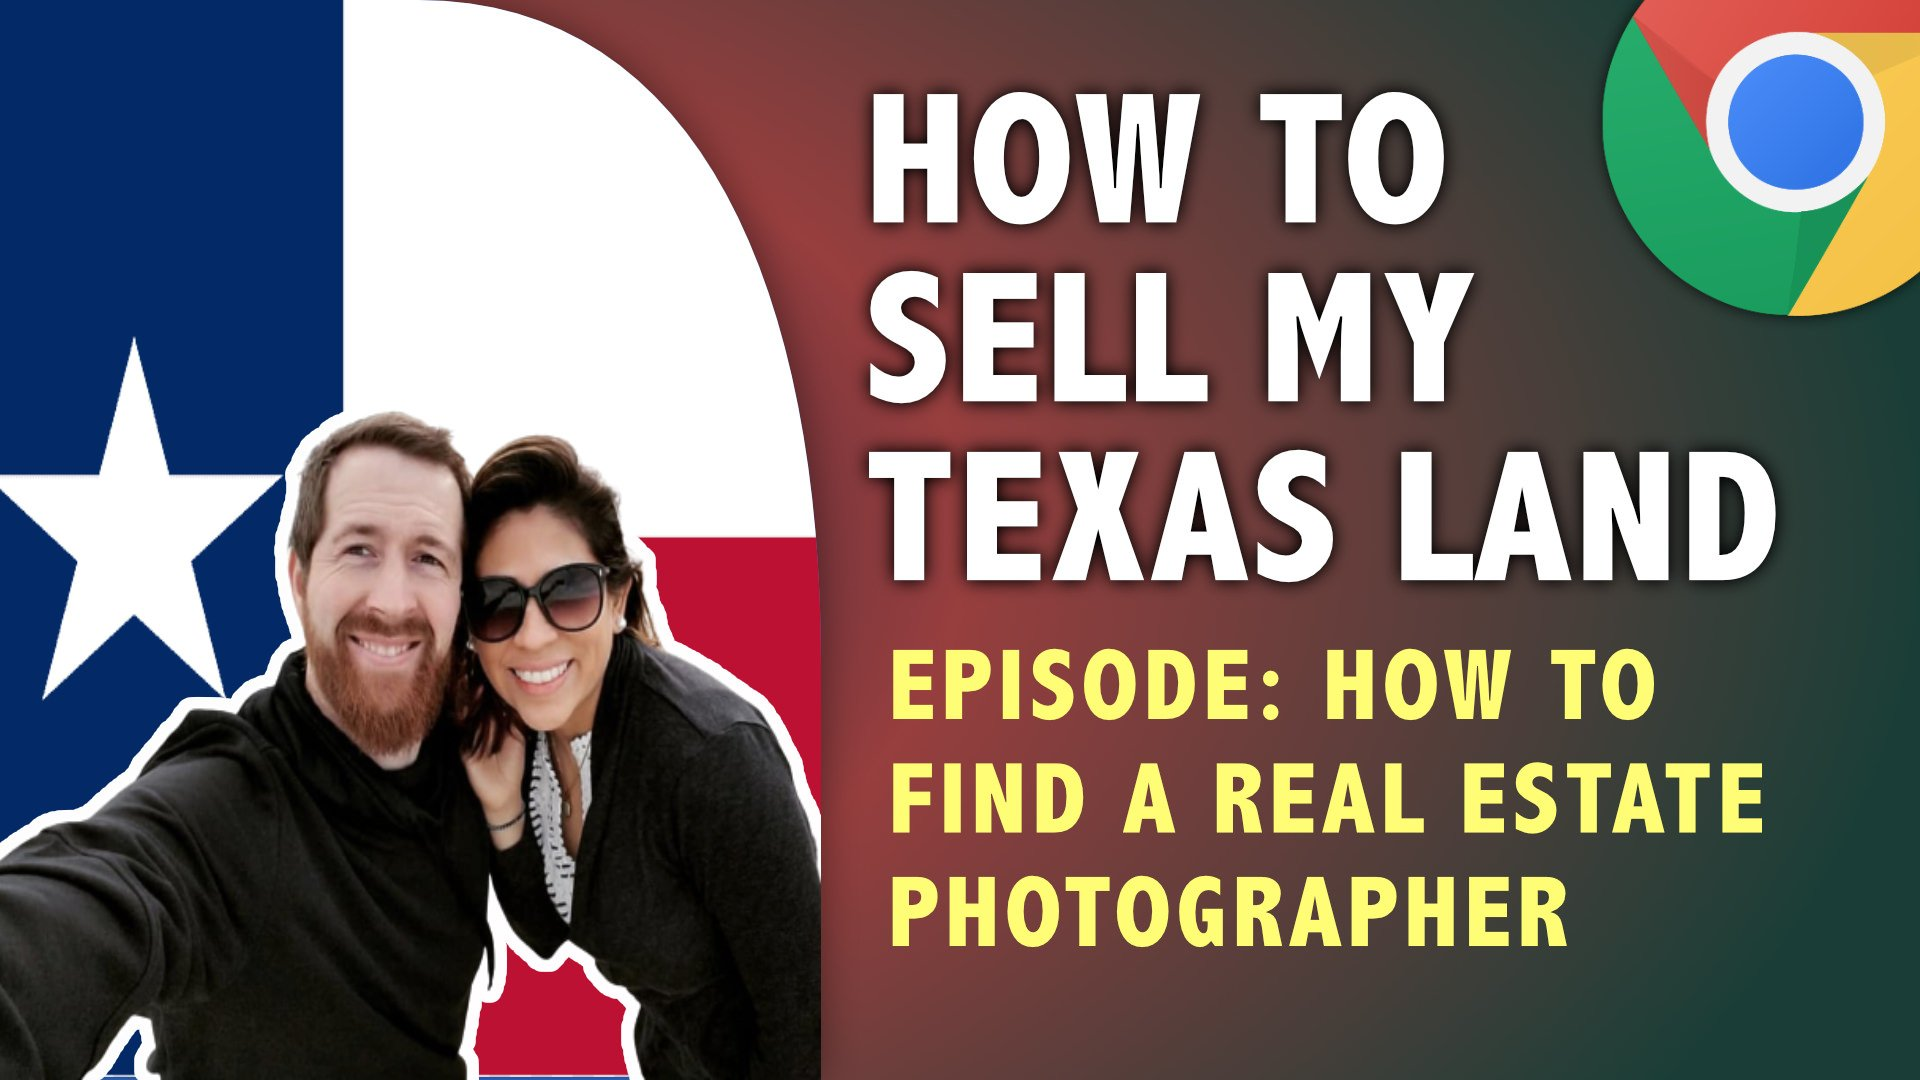 Sell My Texas Land How To Find A Real Estate Photographer, Checklands